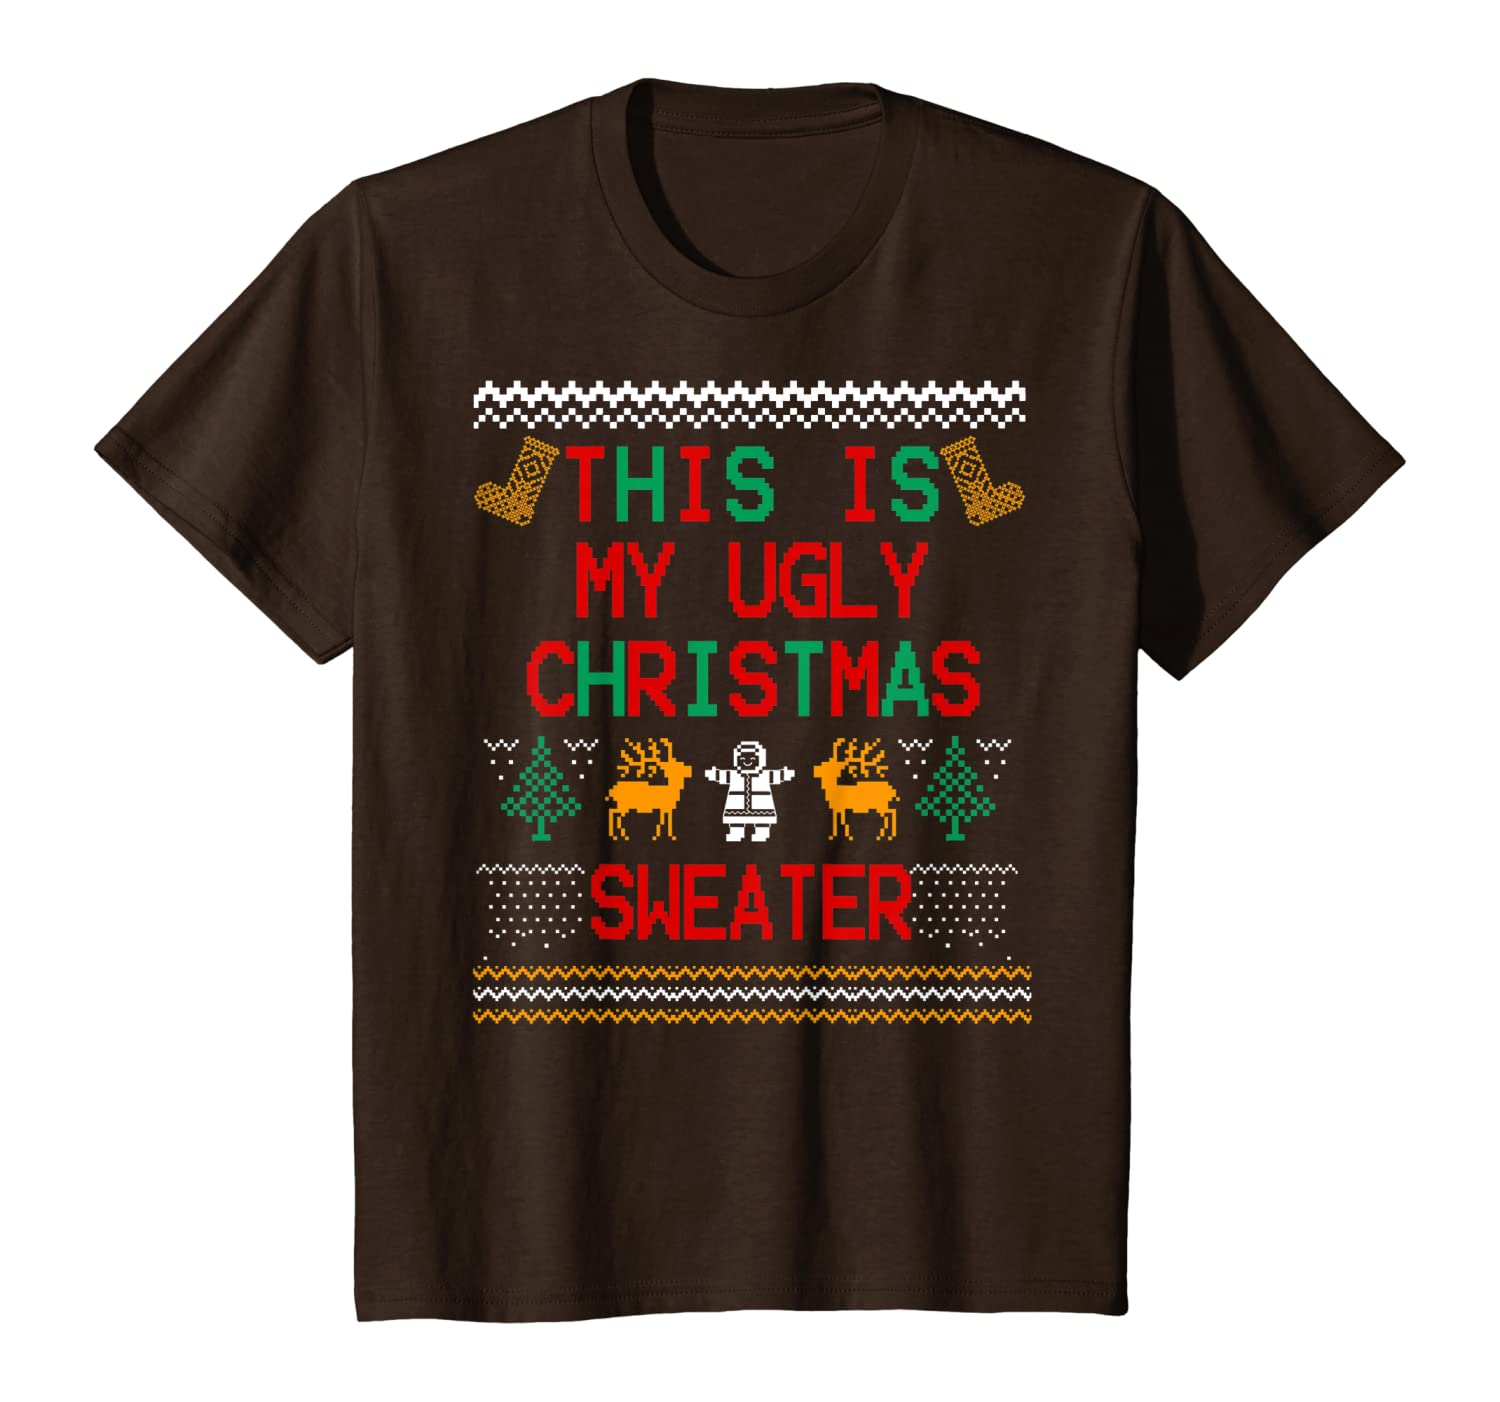 This Is My Ugly Tee, Funny Christmas Noel Eve Gift T-Shirt Youth